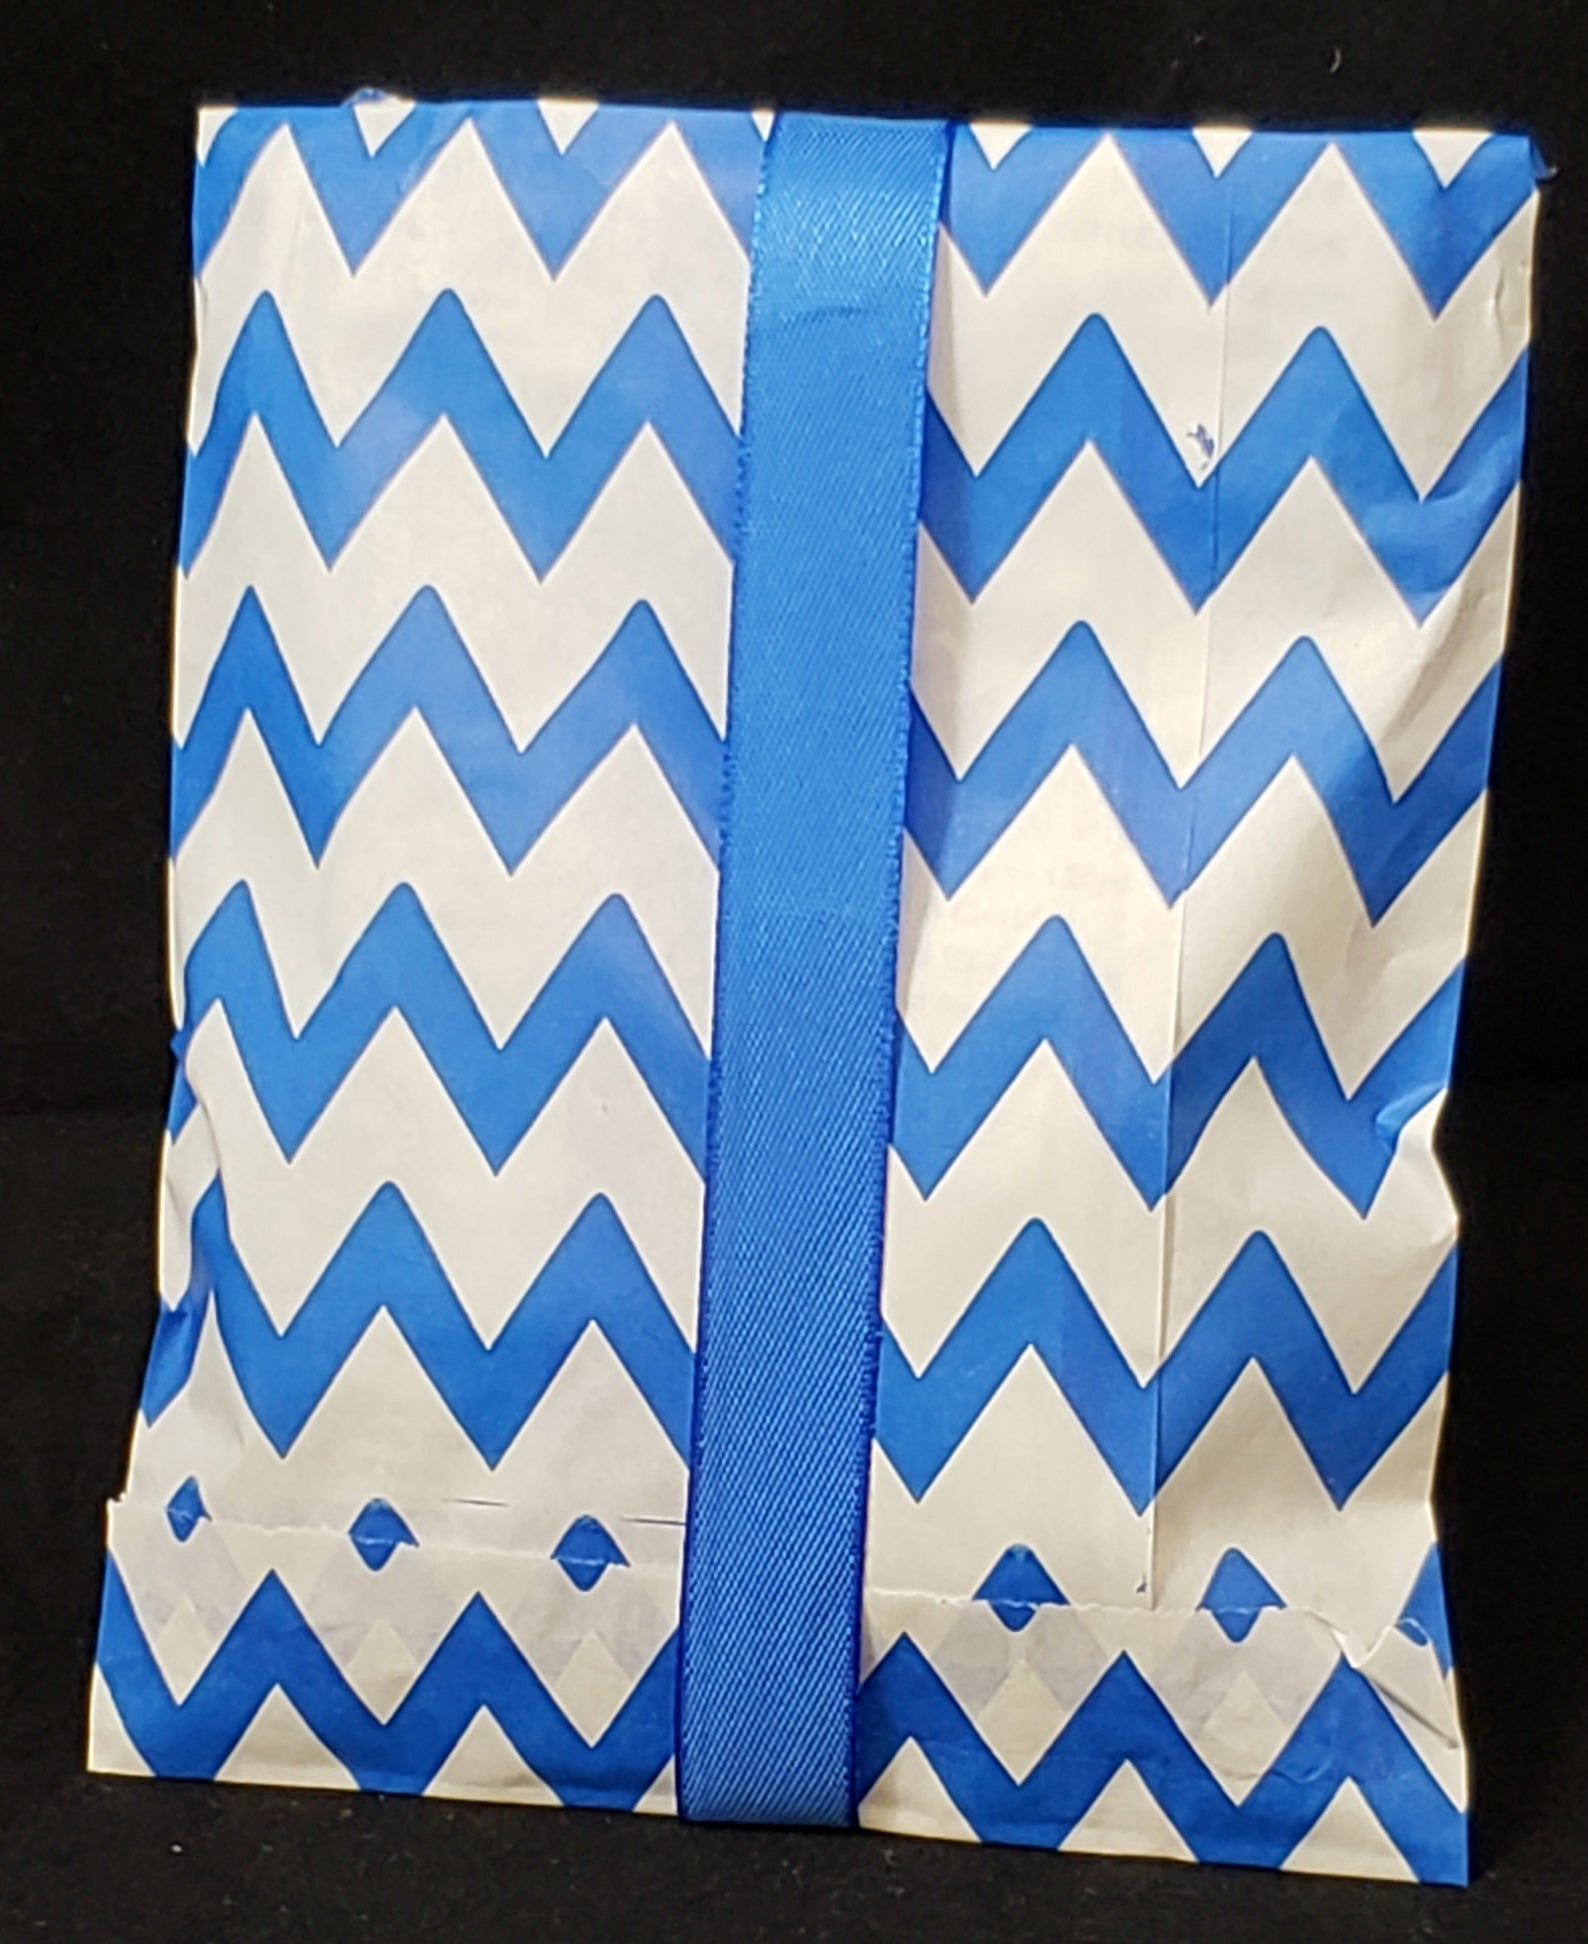 Blue Chevron Bag Pekalach Upsherin, Birthday, New Baby